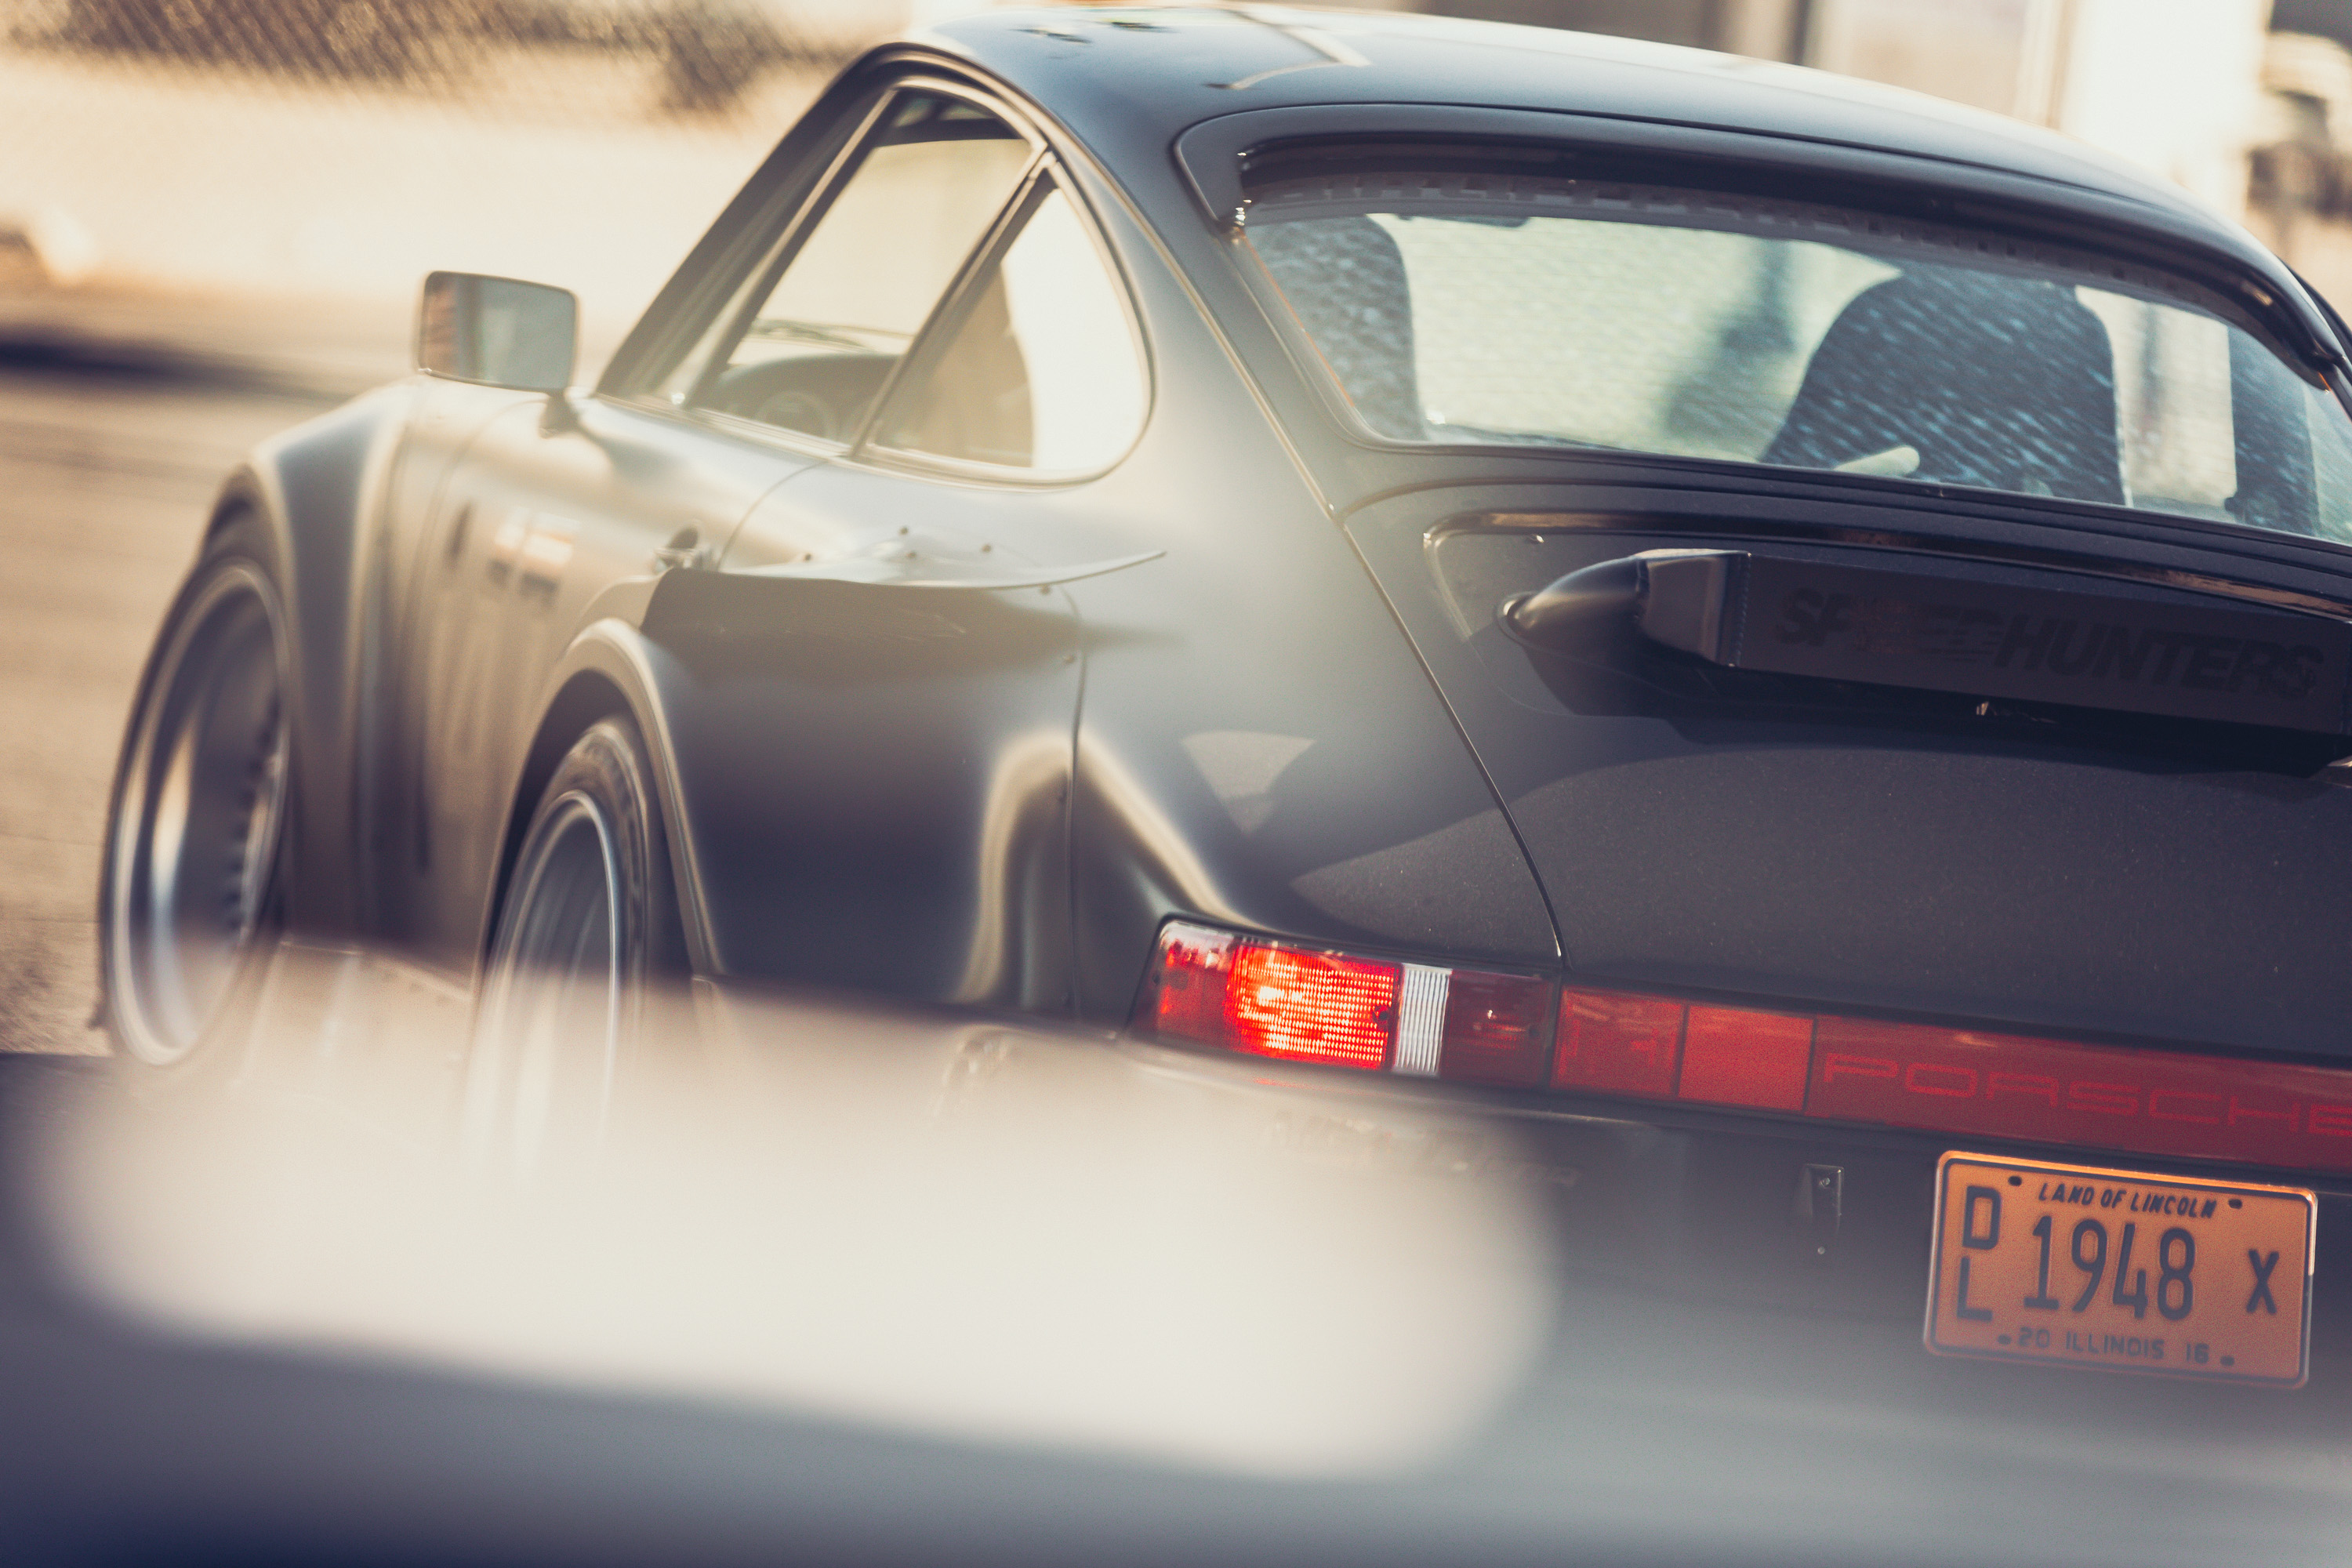 Porsche 964 driven by BBC's Top Gear Team